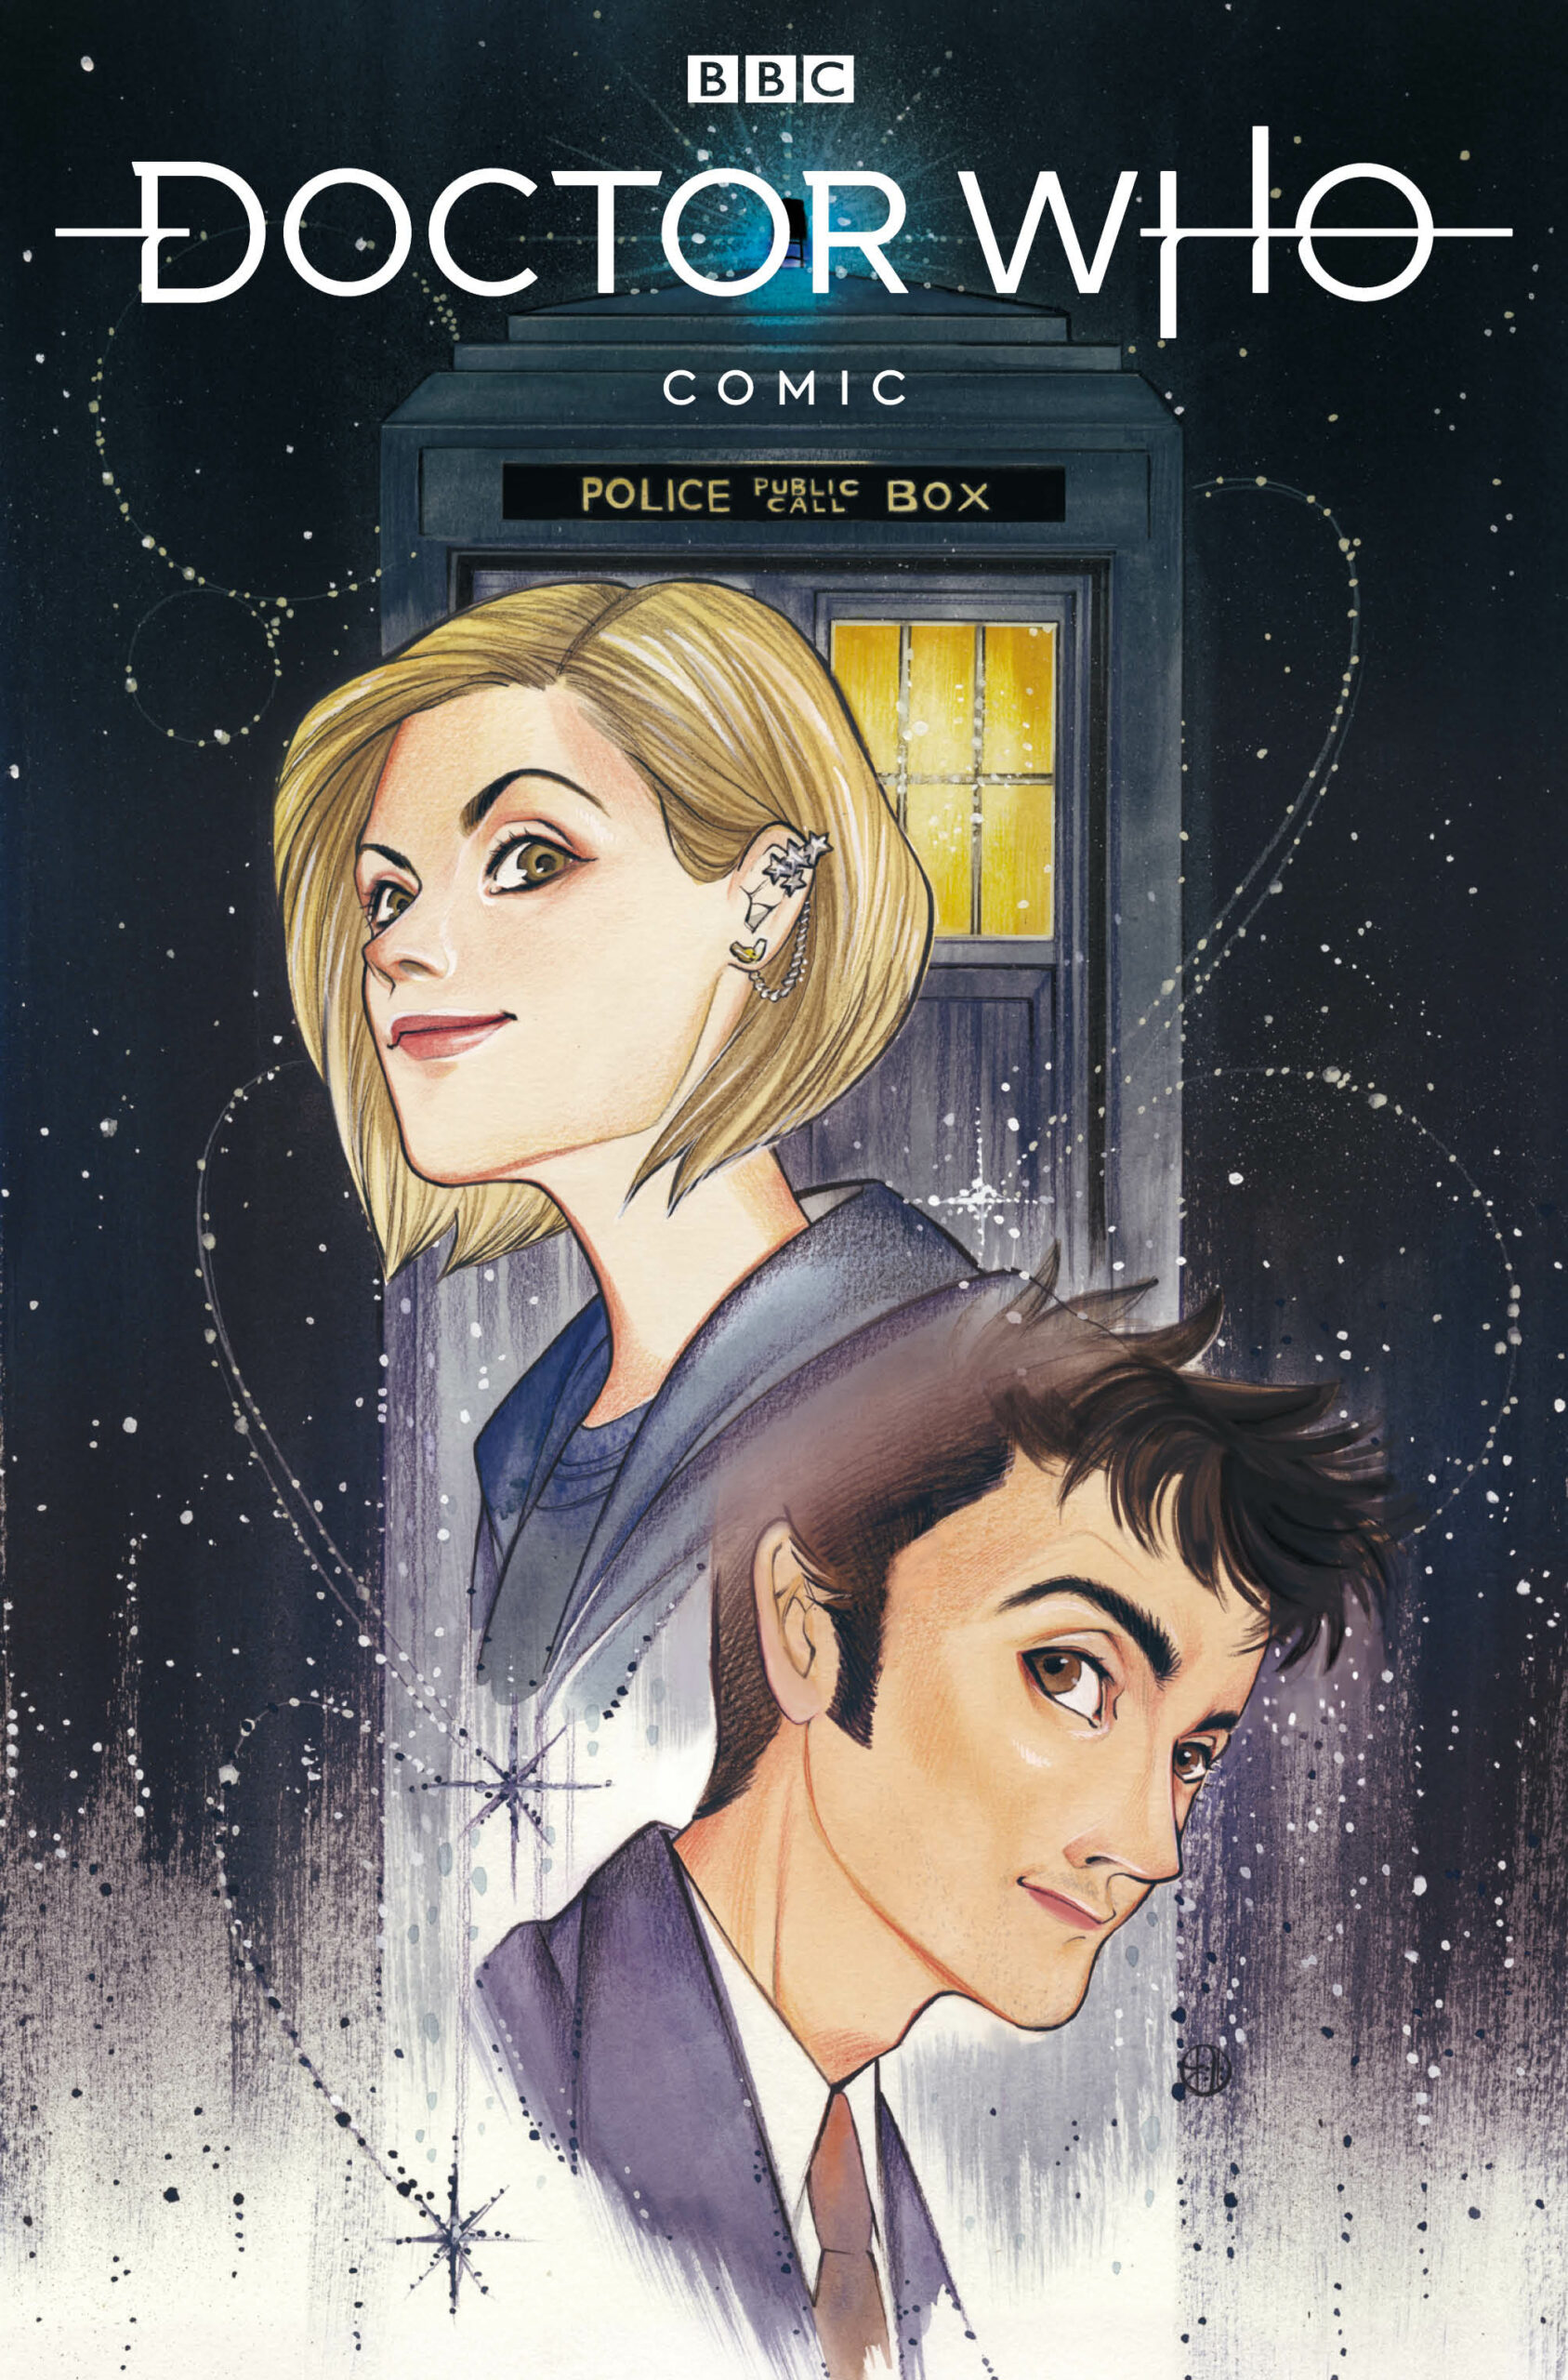 DOCTOR WHO #2 - Cover A